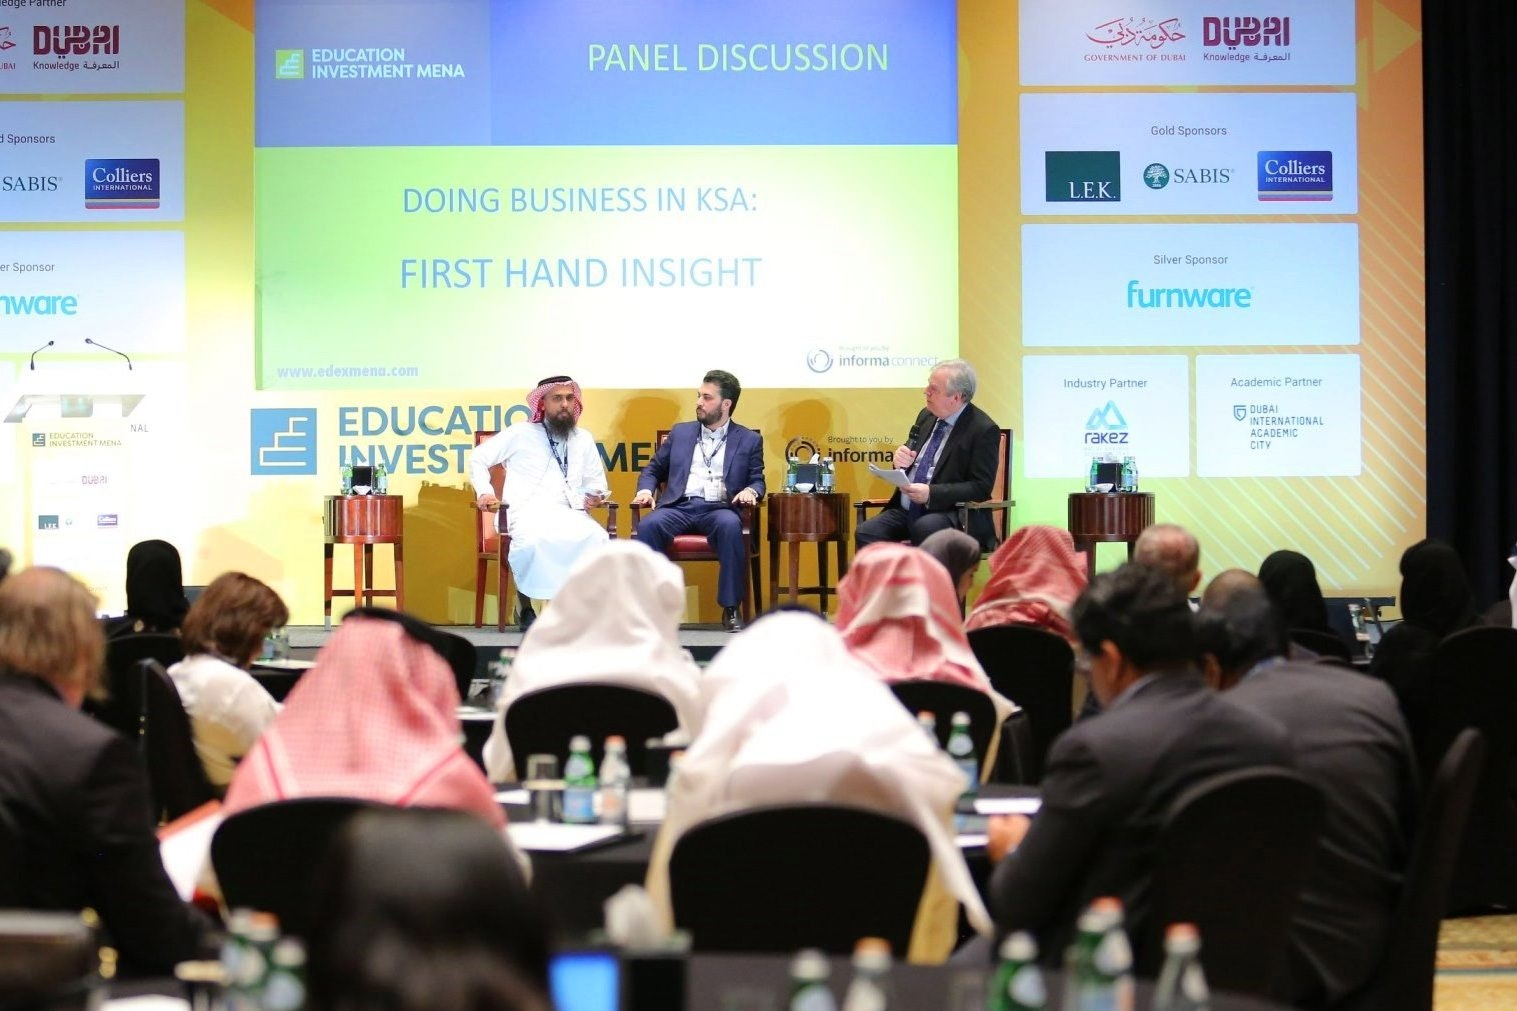 Engaging Panel Discussions